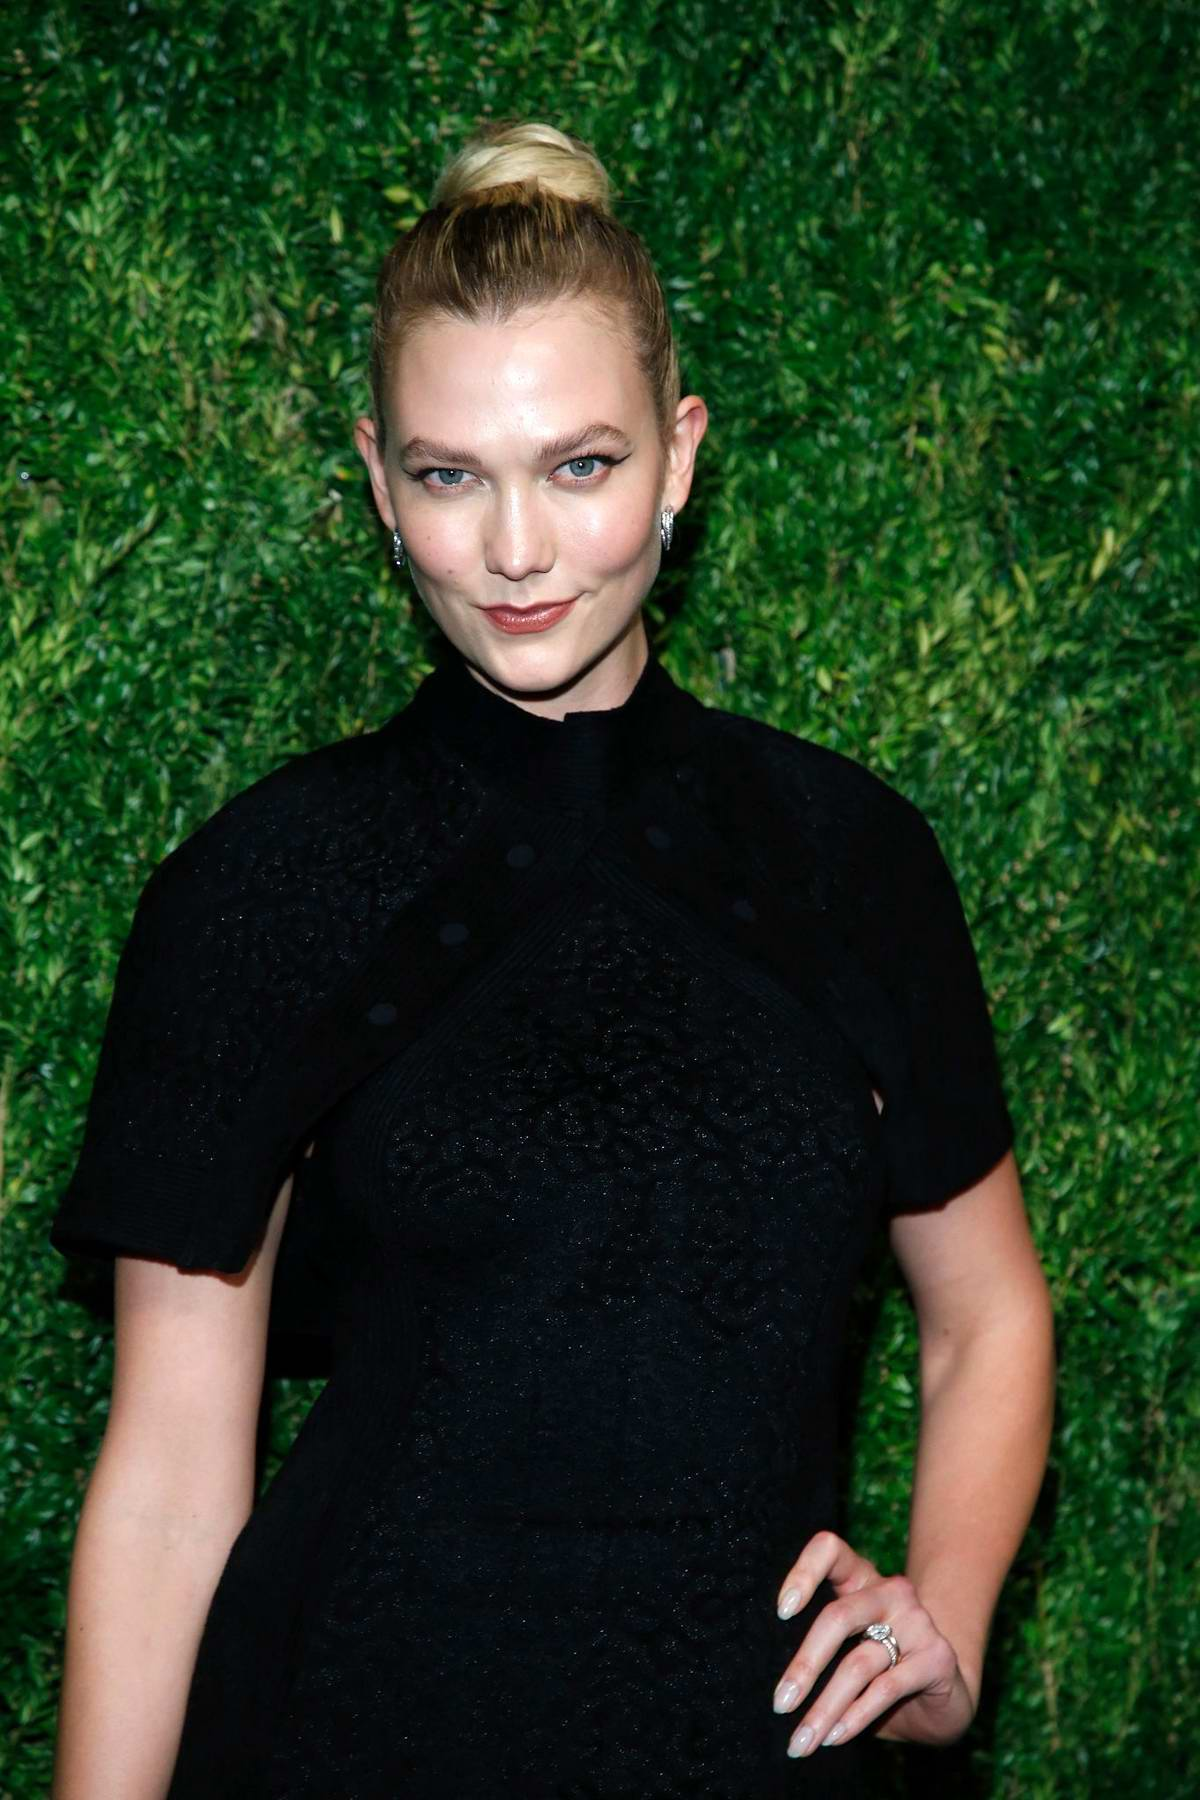 Karlie Kloss attends CFDA Vogue Fashion Fund 15th Anniversary Awards in Brooklyn, New York City